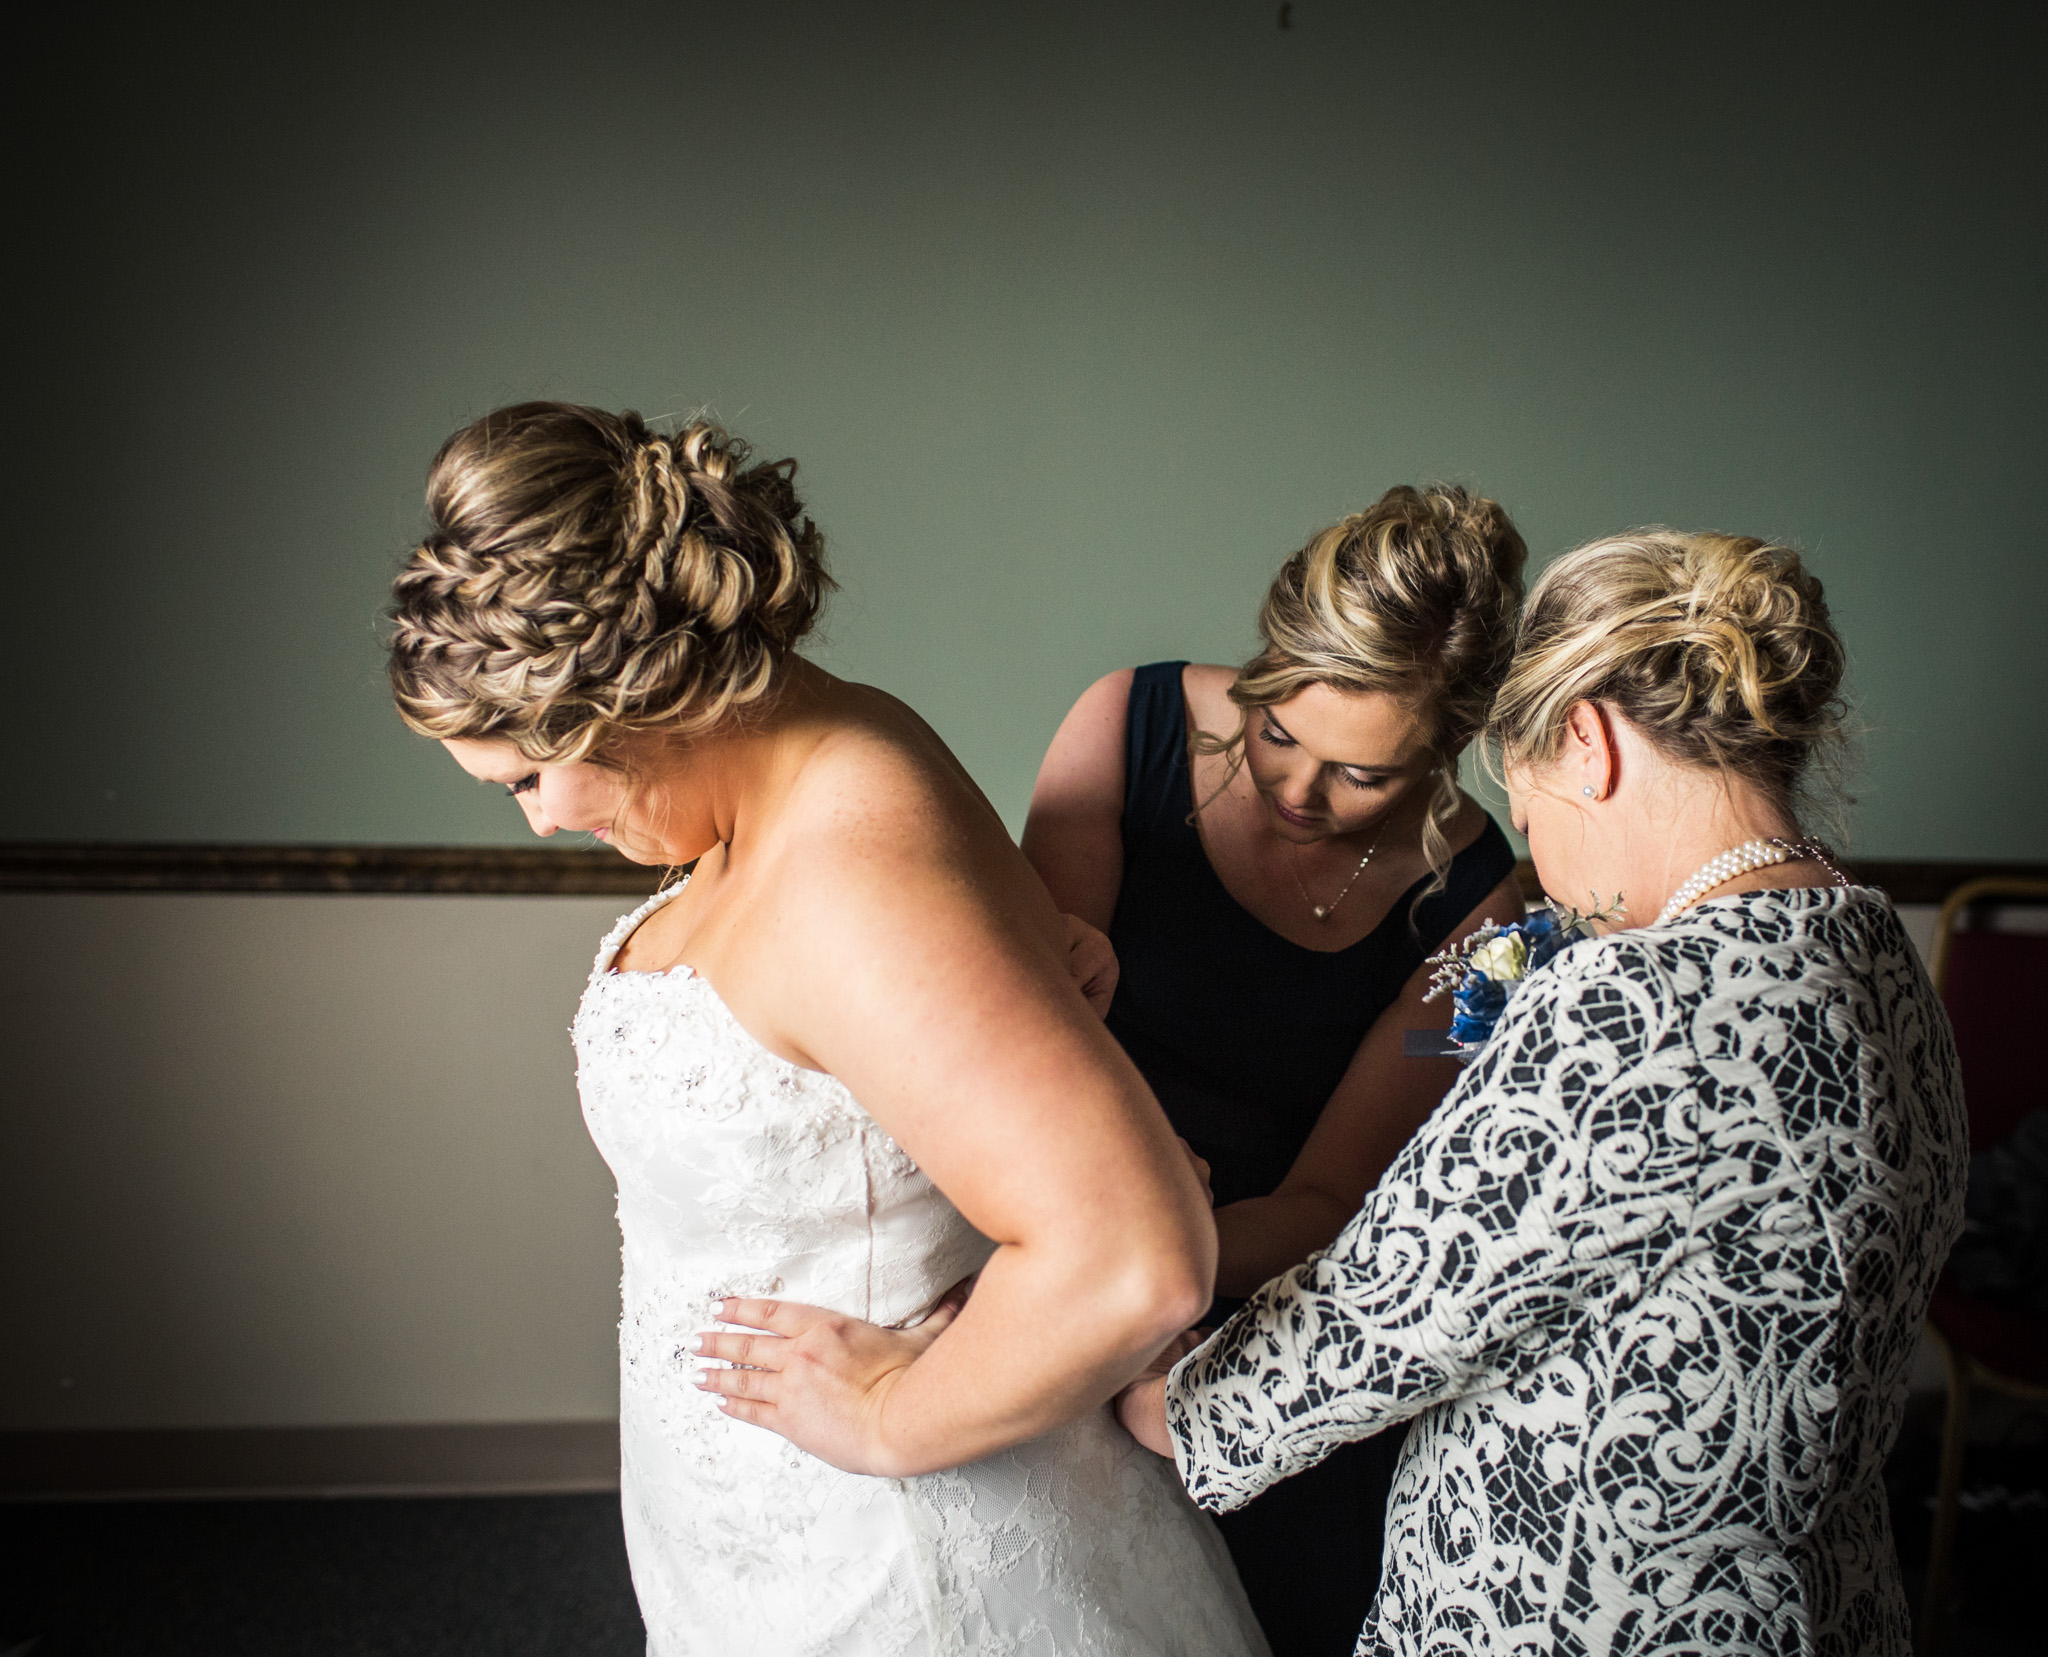 Zibell Spring Wedding, Bride and Groom, Powerful, Connected, Exploration, Laura Duggleby Photography -55.JPG